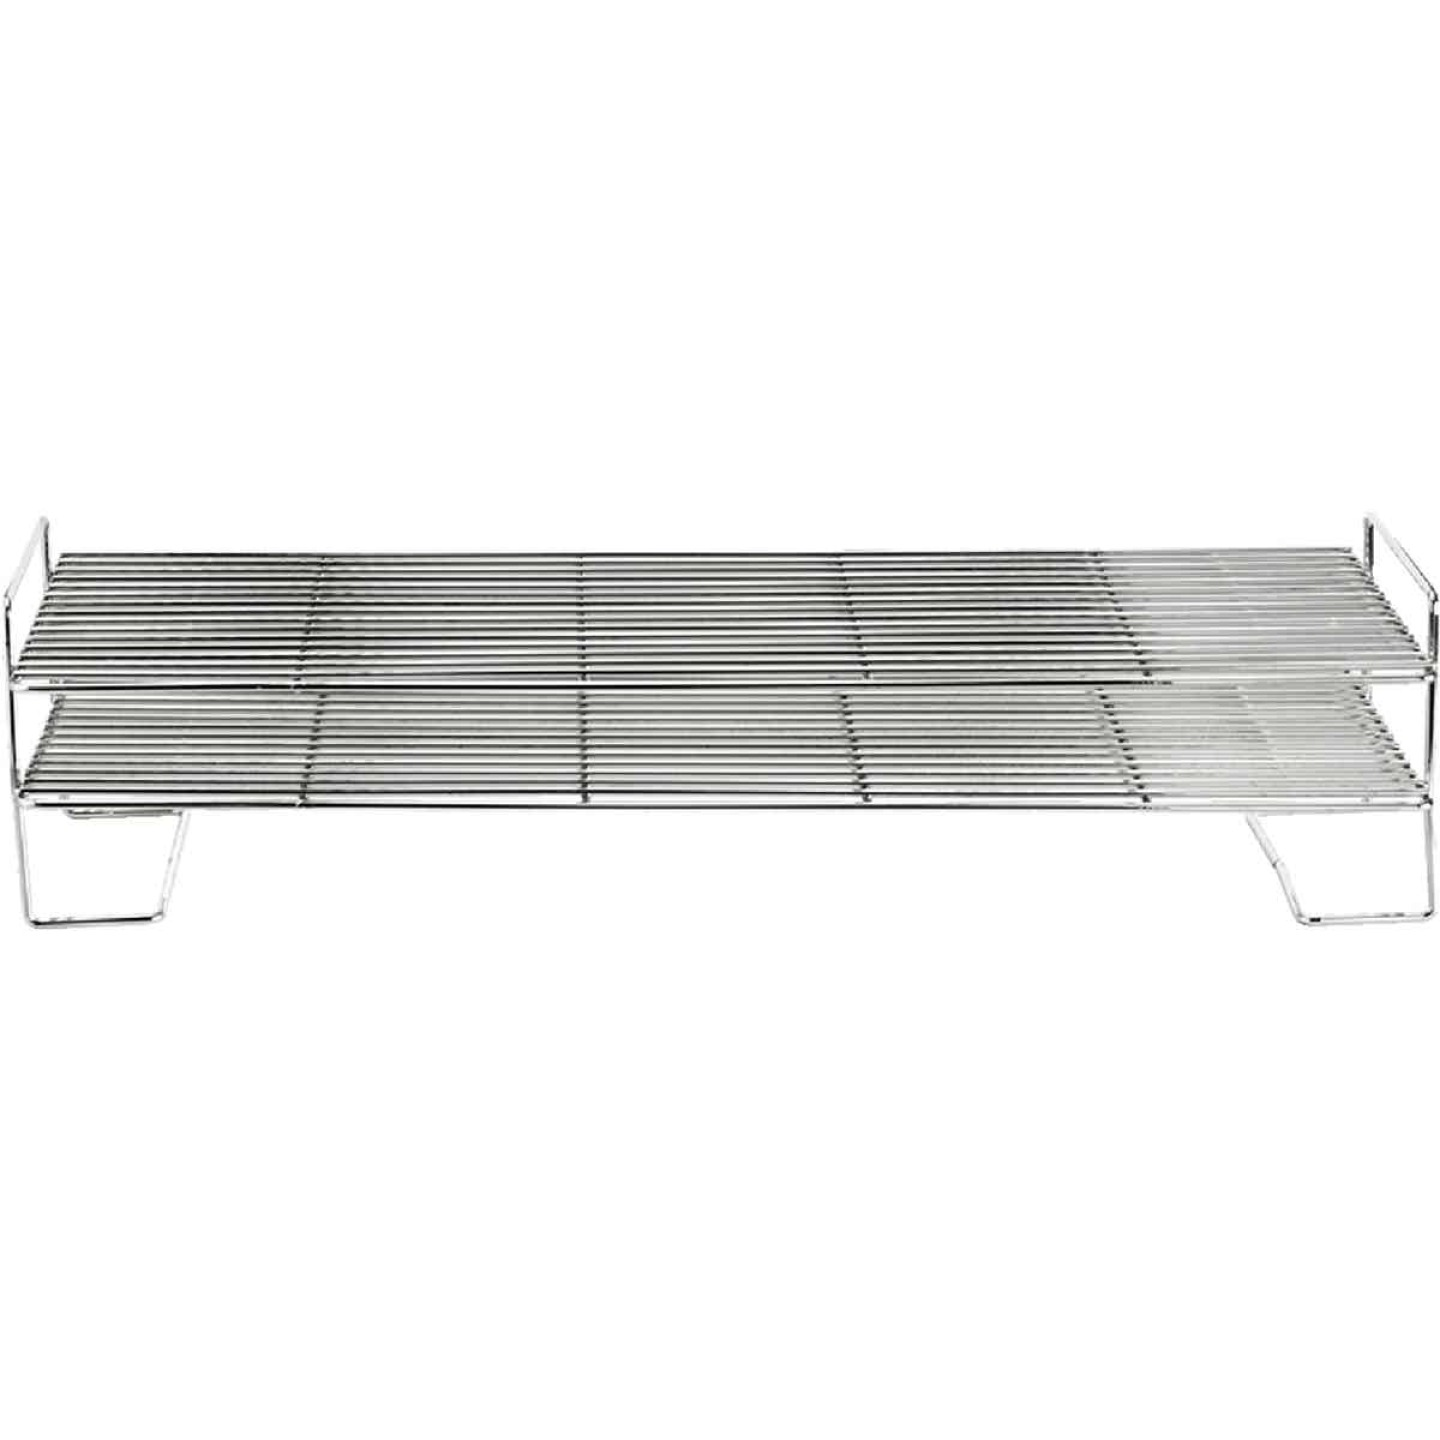 Traeger Lil' Tex/22 Series Nickel-Plated Steel Grill Rack Image 1